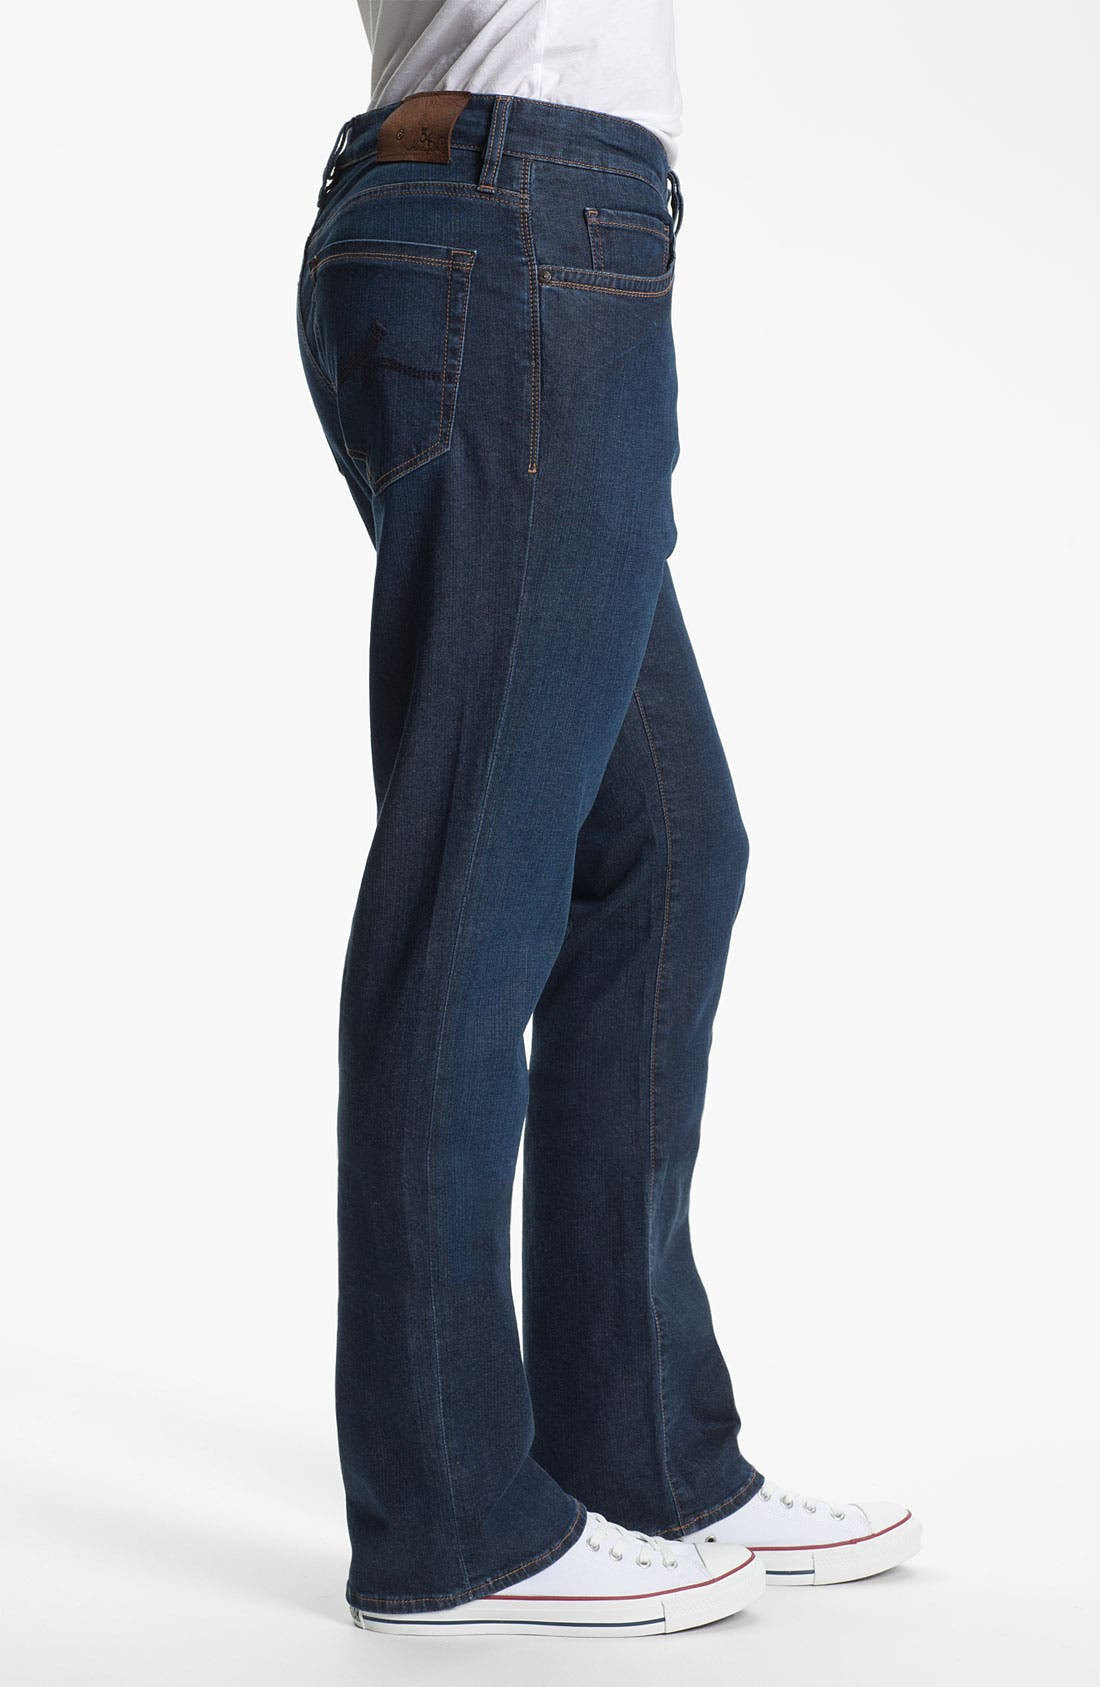 34 HERITAGE,                             'Charisma' Classic Relaxed Fit Jeans,                             Alternate thumbnail 4, color,                             DARK CASHMERE WASH